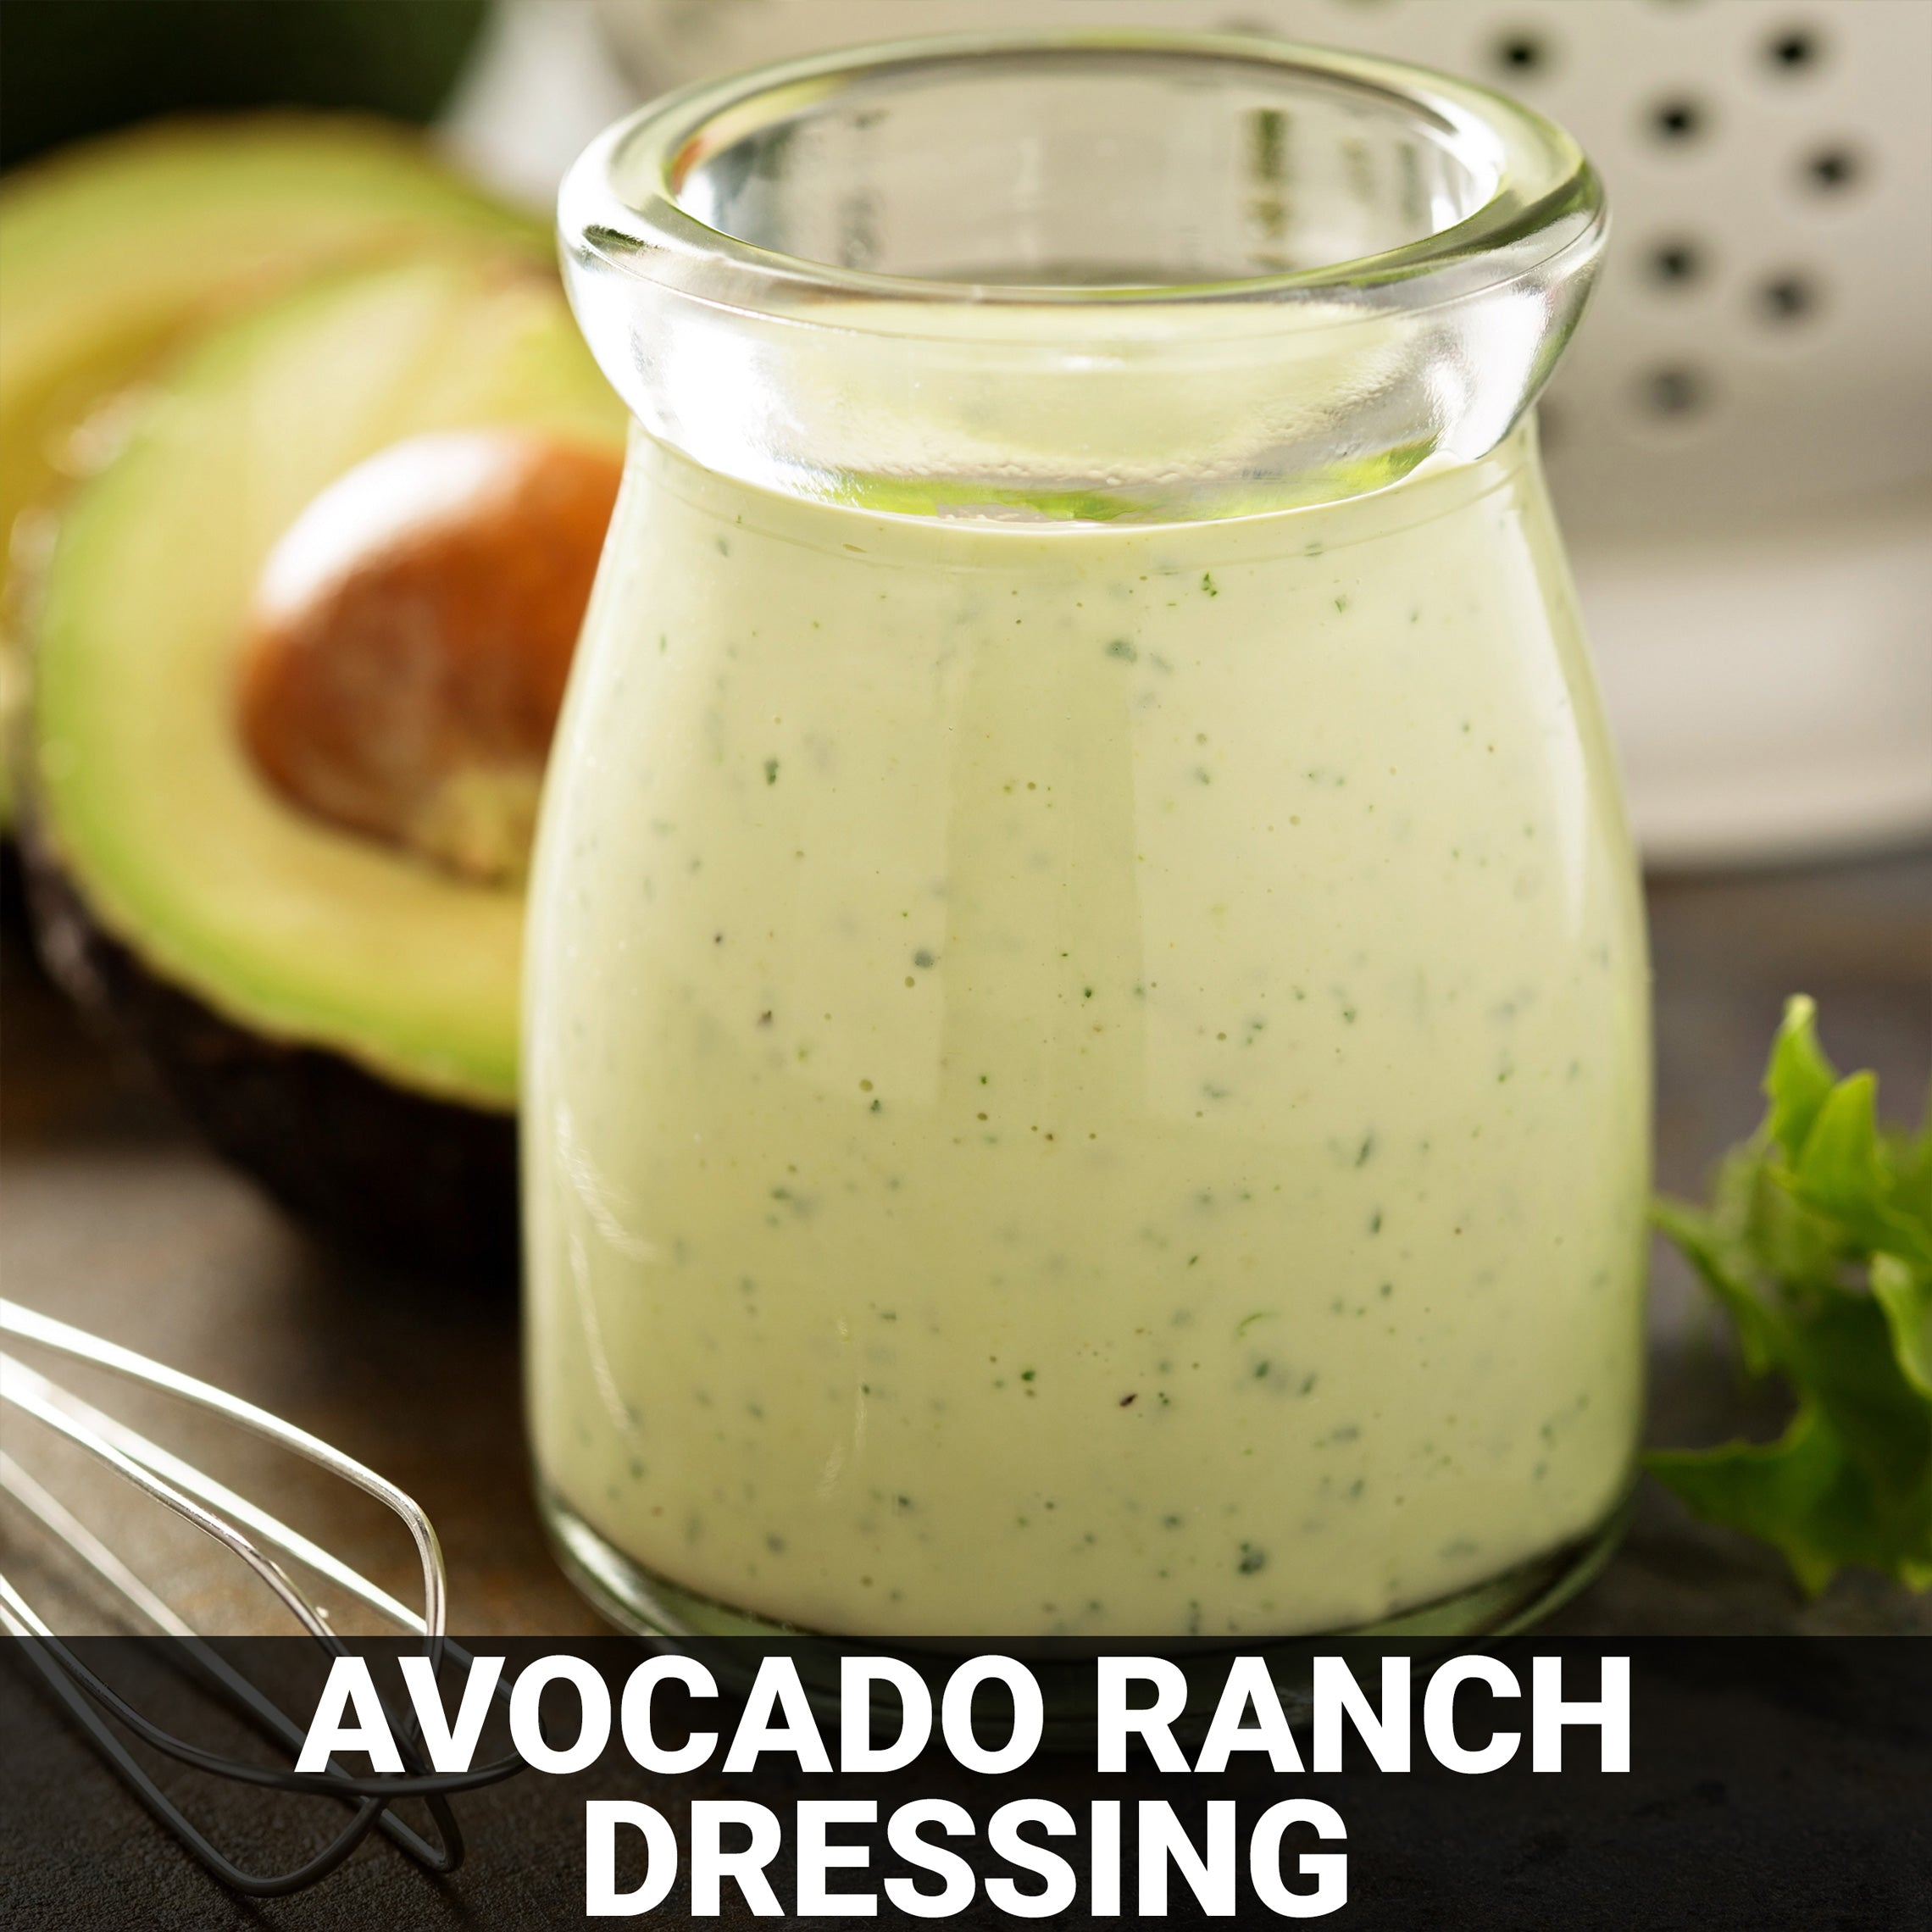 Avocado Ranch Dressing Recipe - Foods Alive